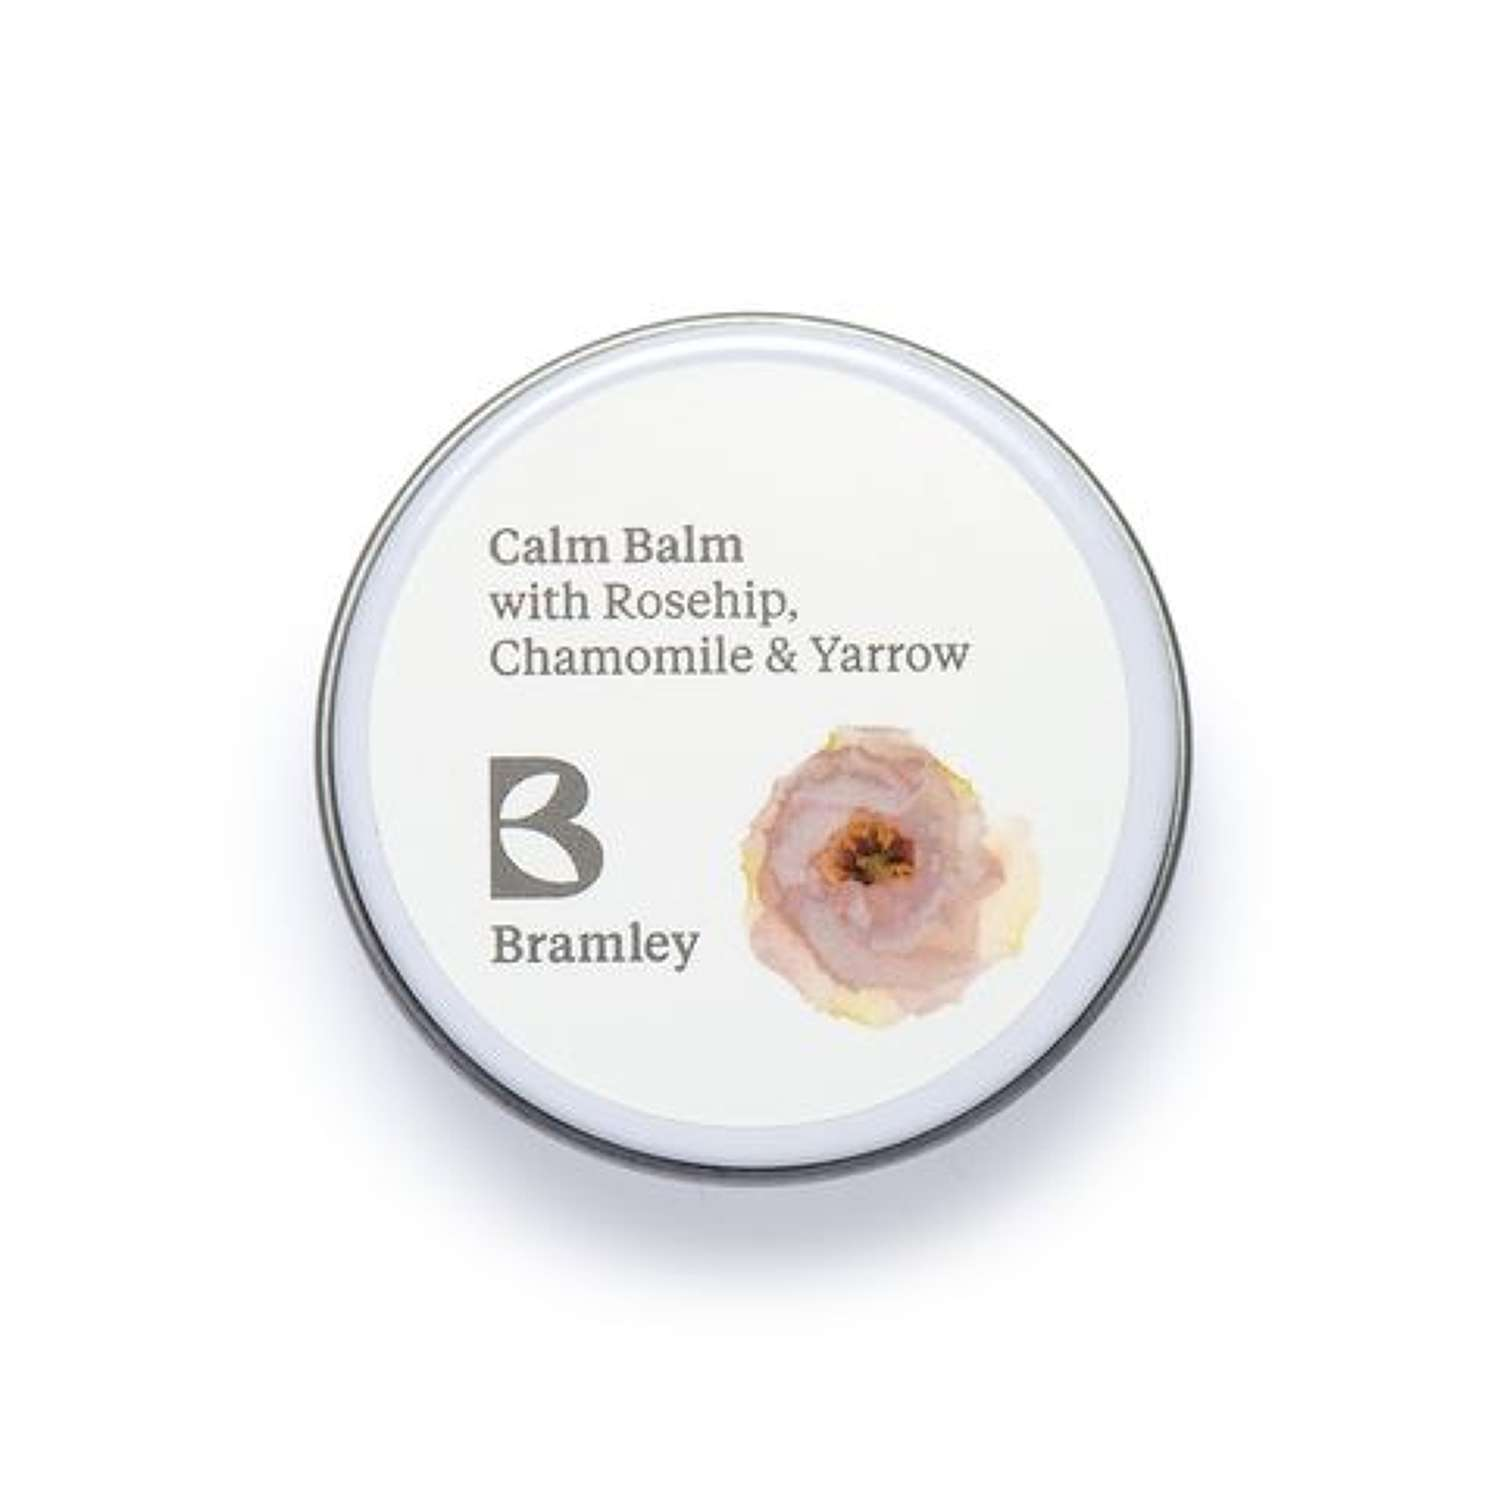 Bramley Mini Calm Balm - 15g